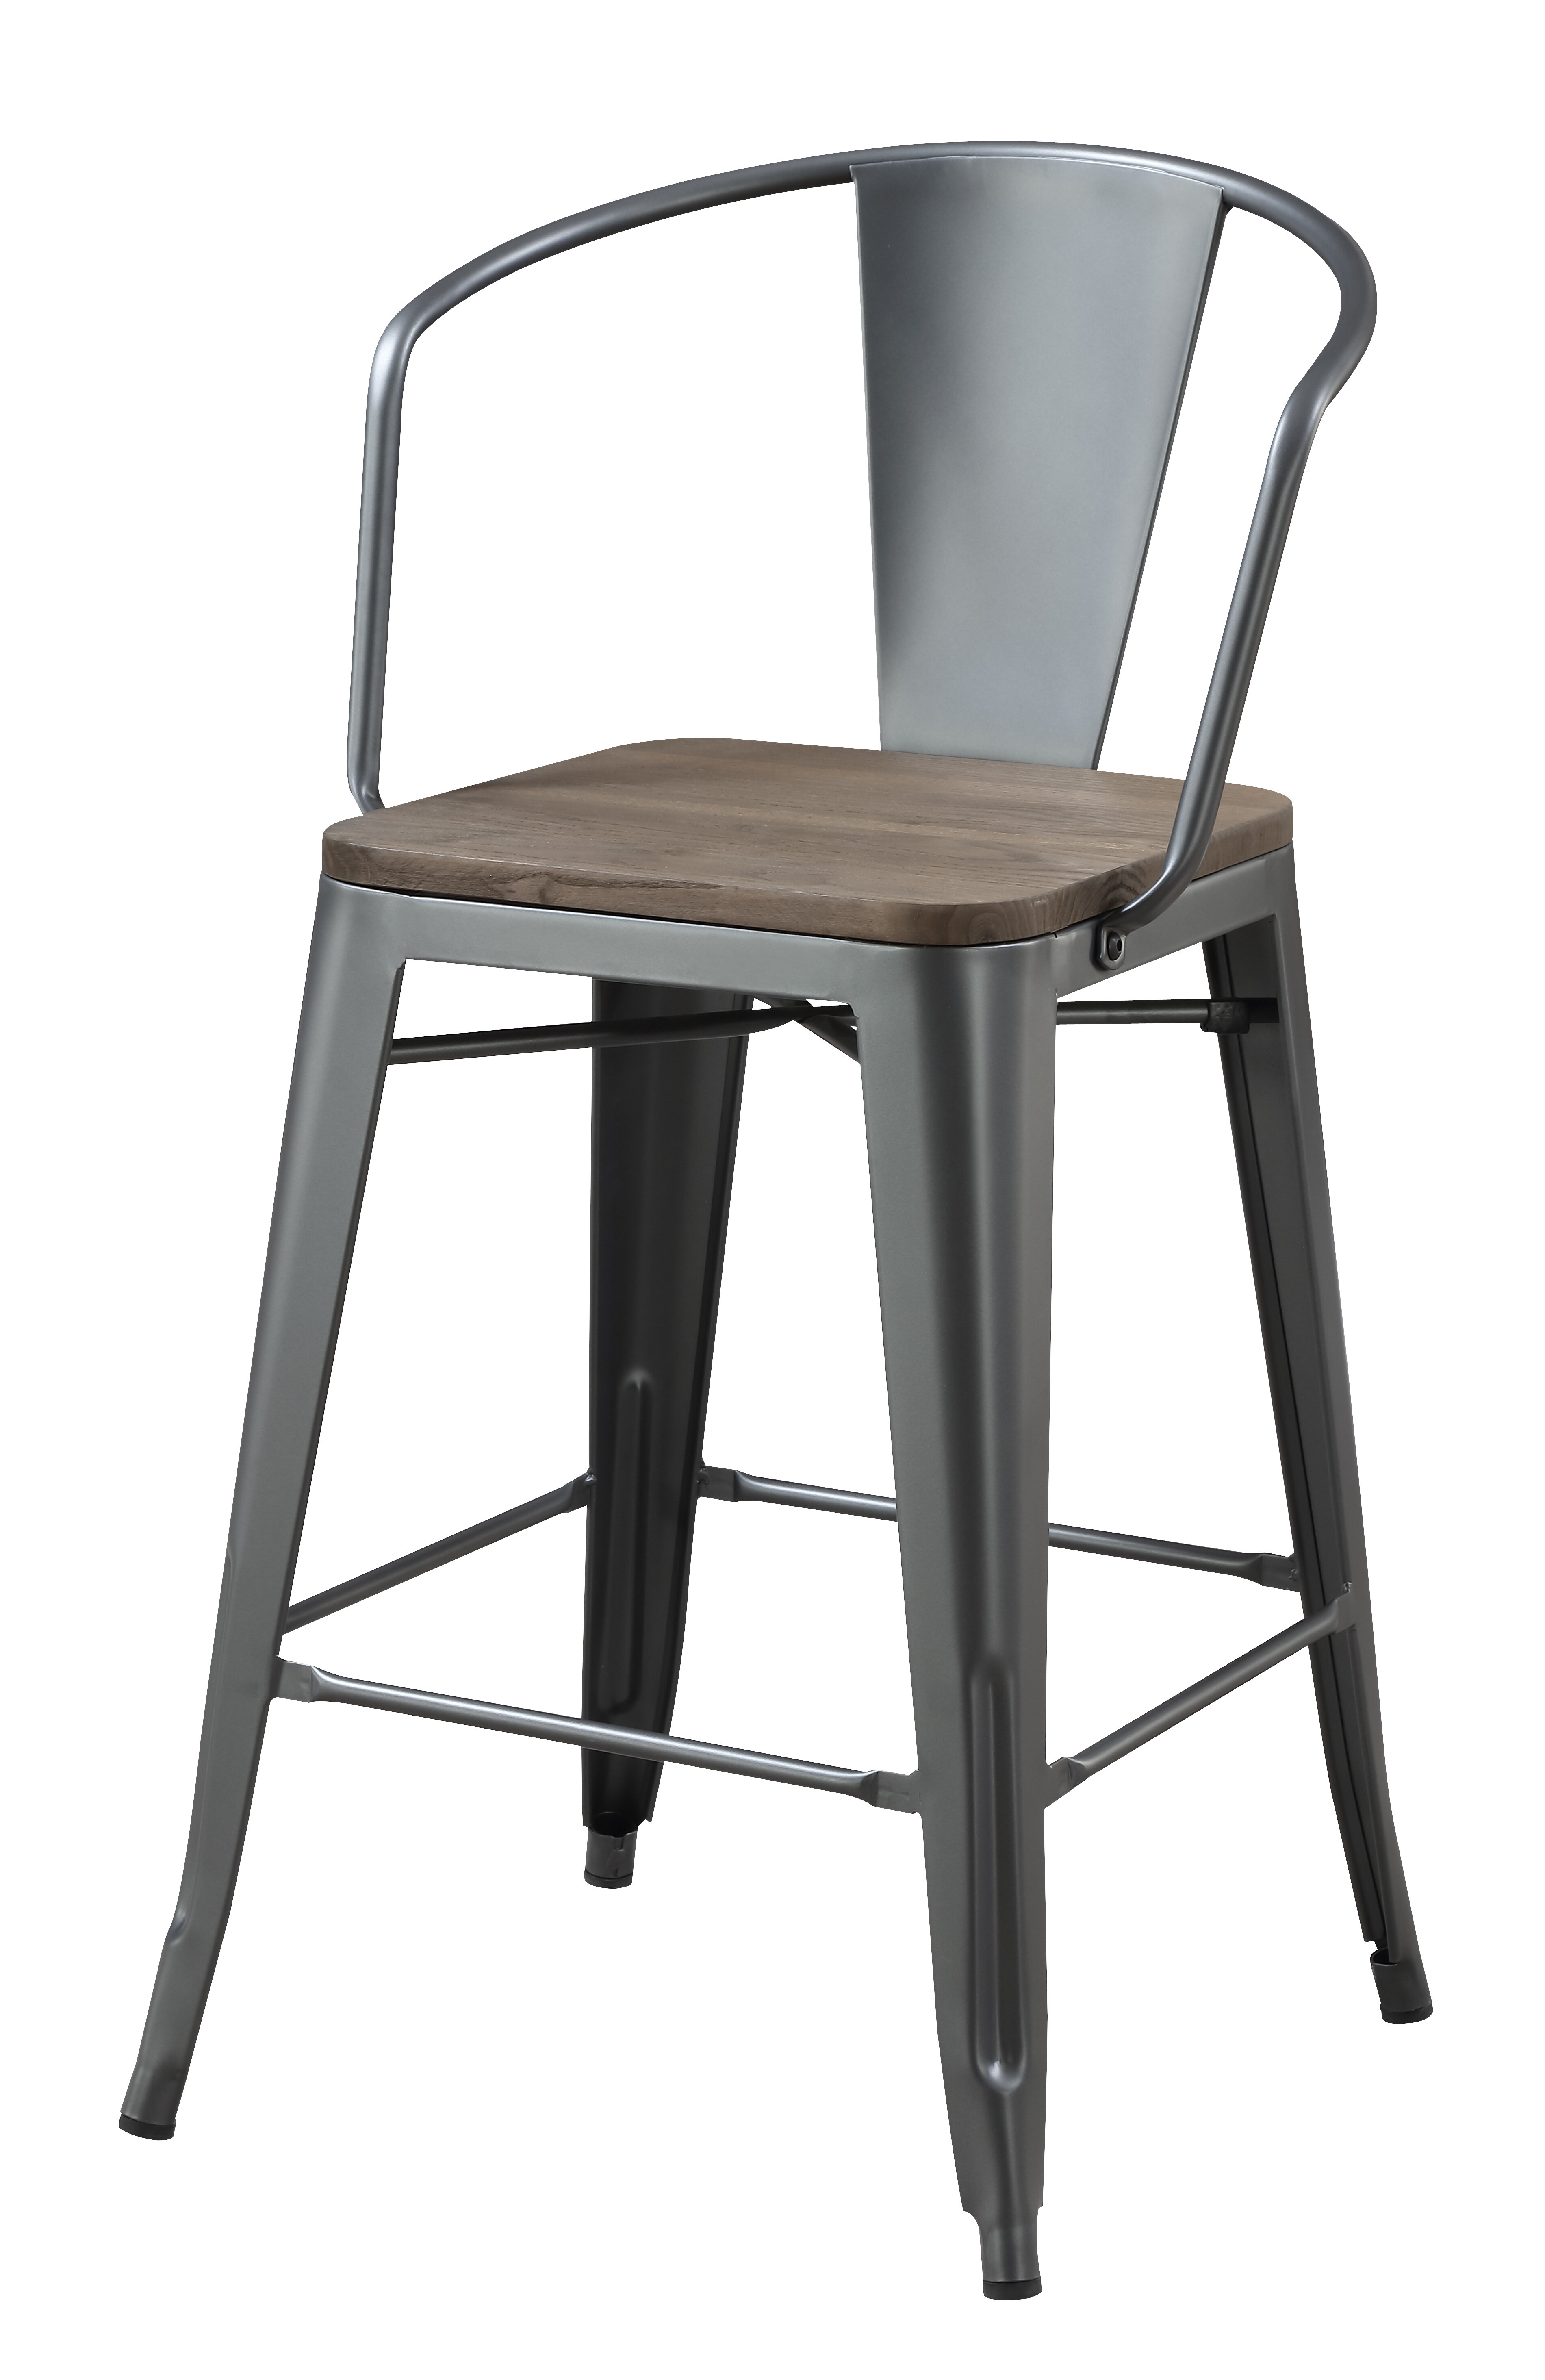 size sale on outstanding wood metal stool wooden height counter swivel bar targetckless of withcks furniture full for stools used kitchen archived